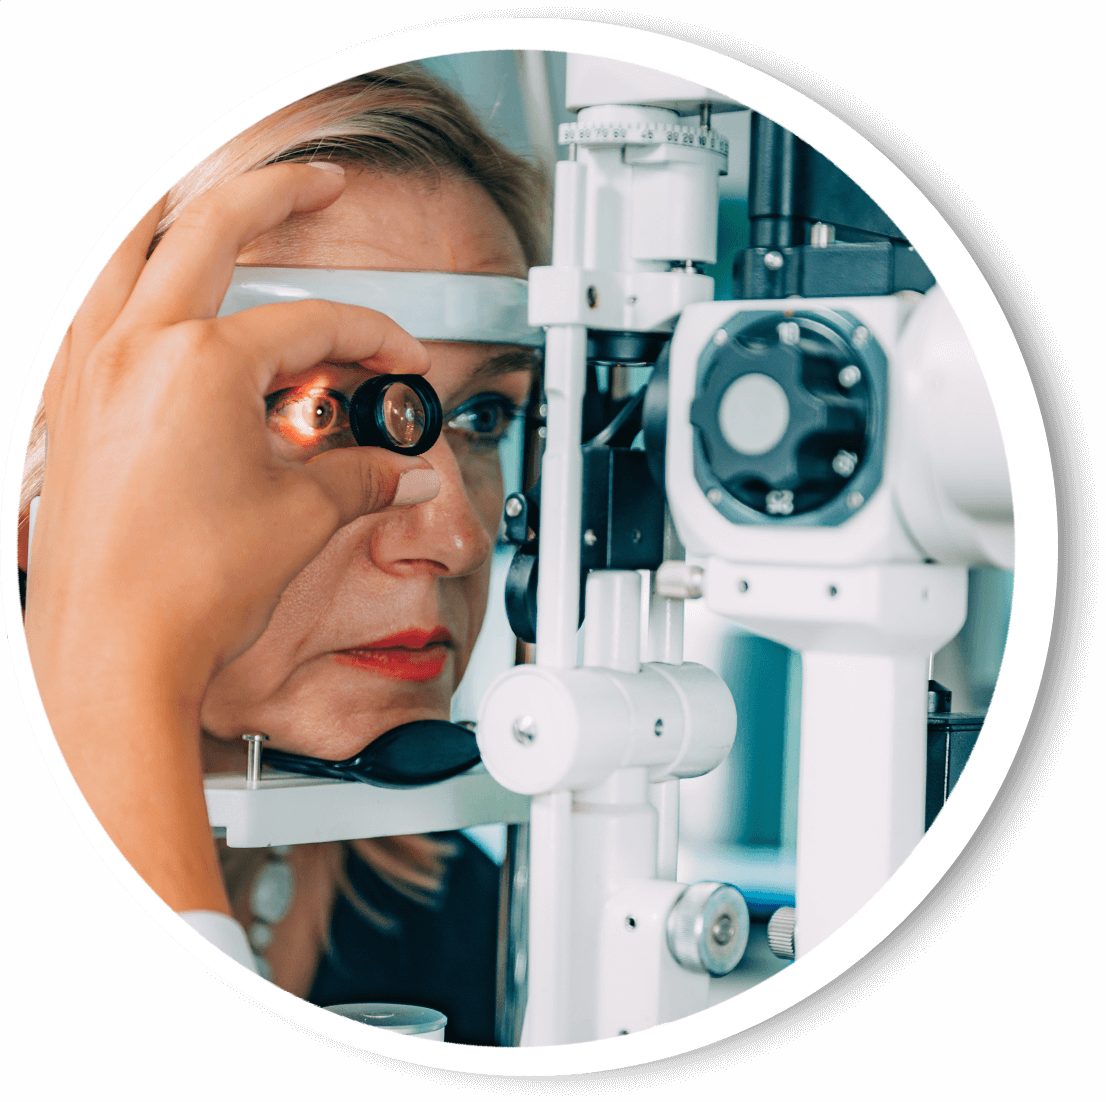 Woman getting her eyes checked